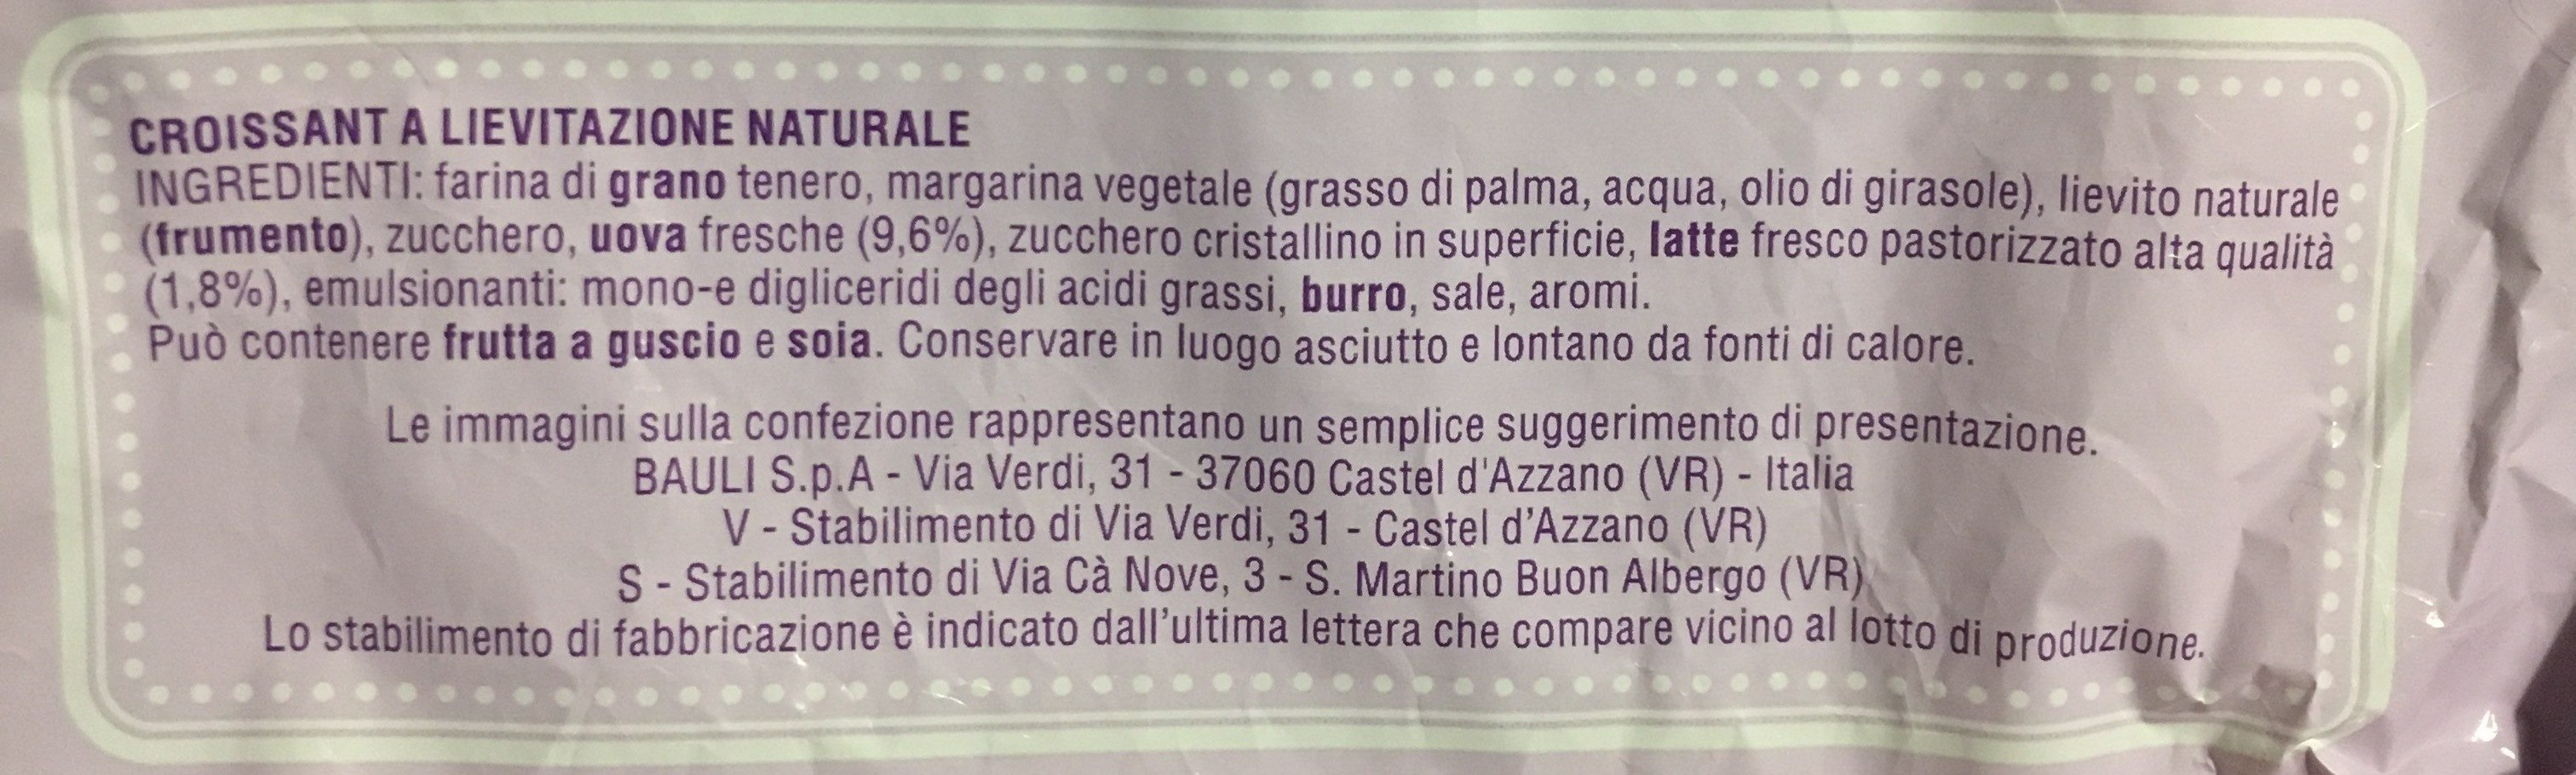 I classici croissant tradizionale - Ingredients - fr